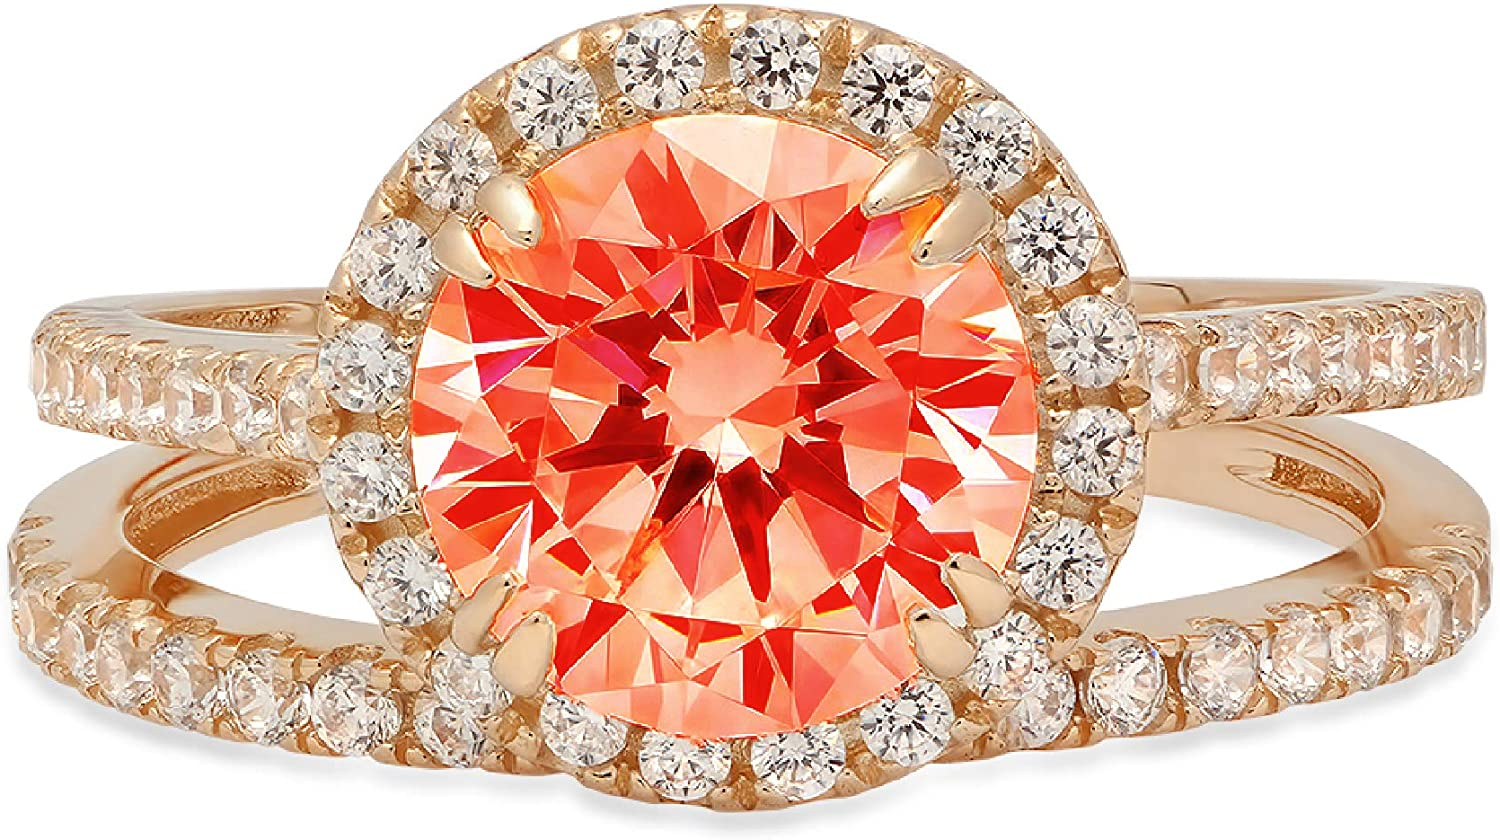 2.66ct Round Cut Halo Pave Solitaire with Accent VVS1 Ideal Red Simulated Diamond CZ Engagement Promise Designer Anniversary Wedding Bridal ring band set 14k Yellow Gold